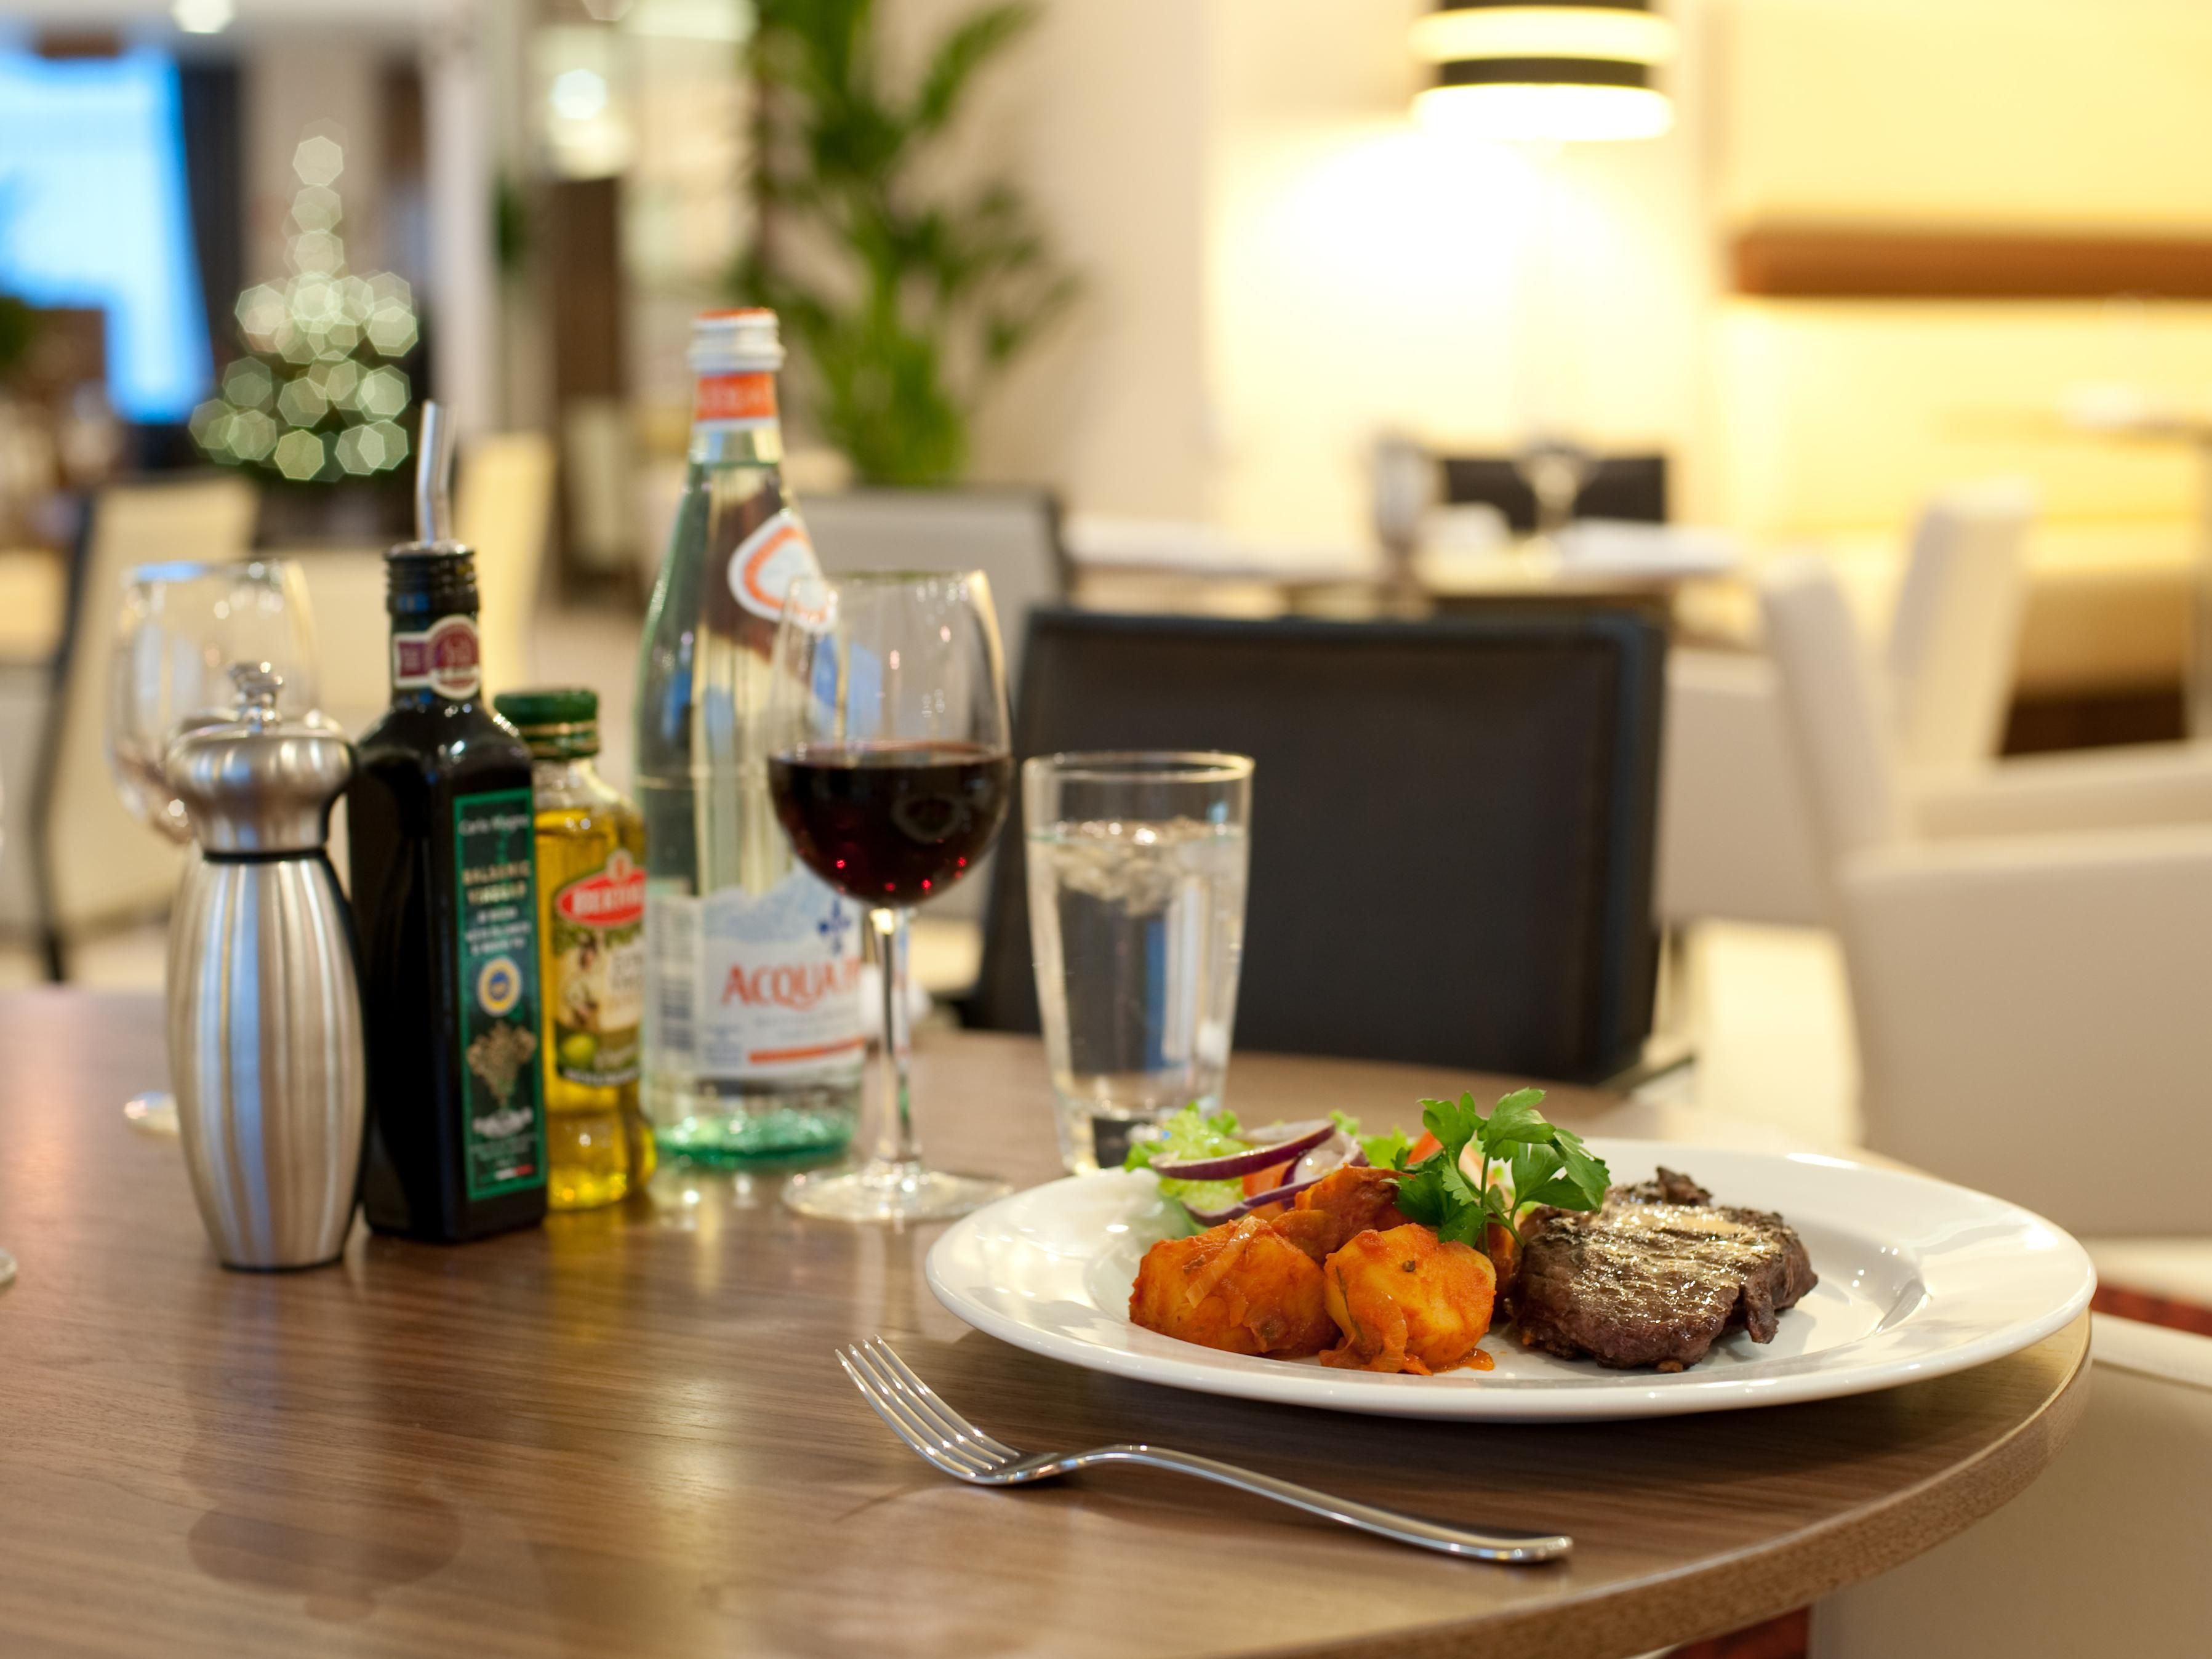 Why not try one of our delicious dishes in our restaurant?